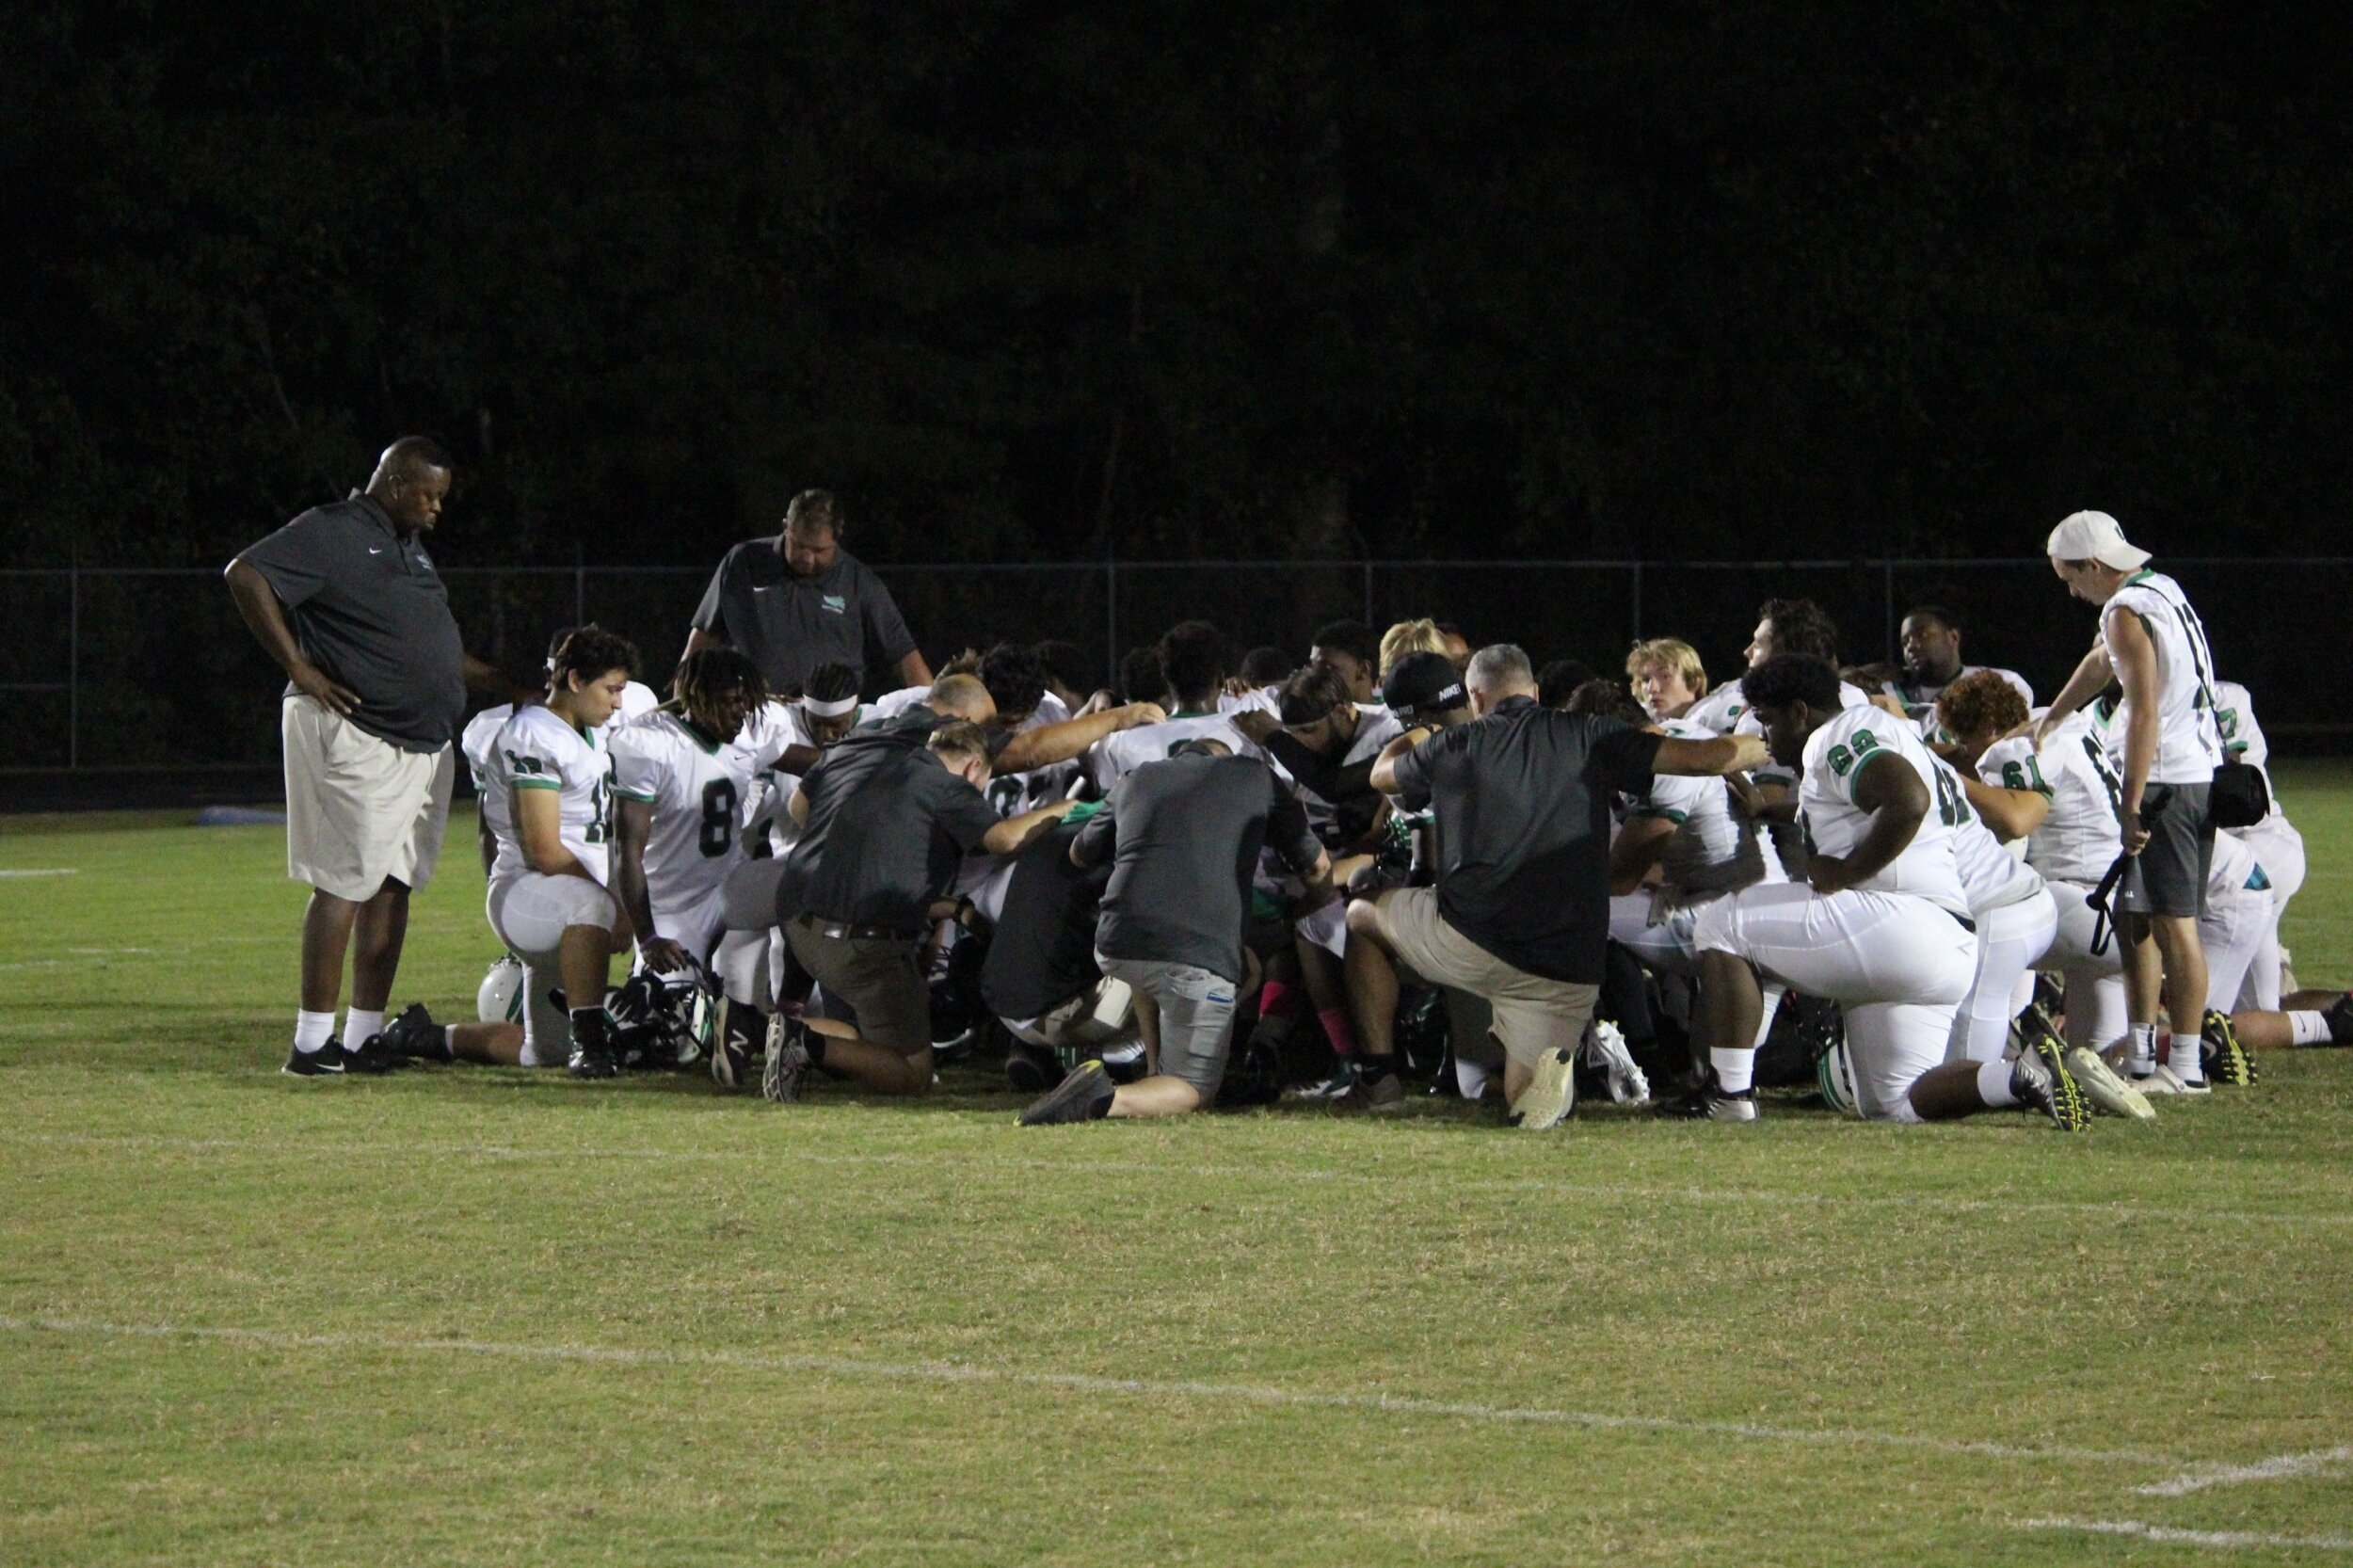 The North Lenoir Hawks football team says a postgame prayer after their 33-6 loss to Washington on Friday. Photo by Laieke Abebe / Neuse News